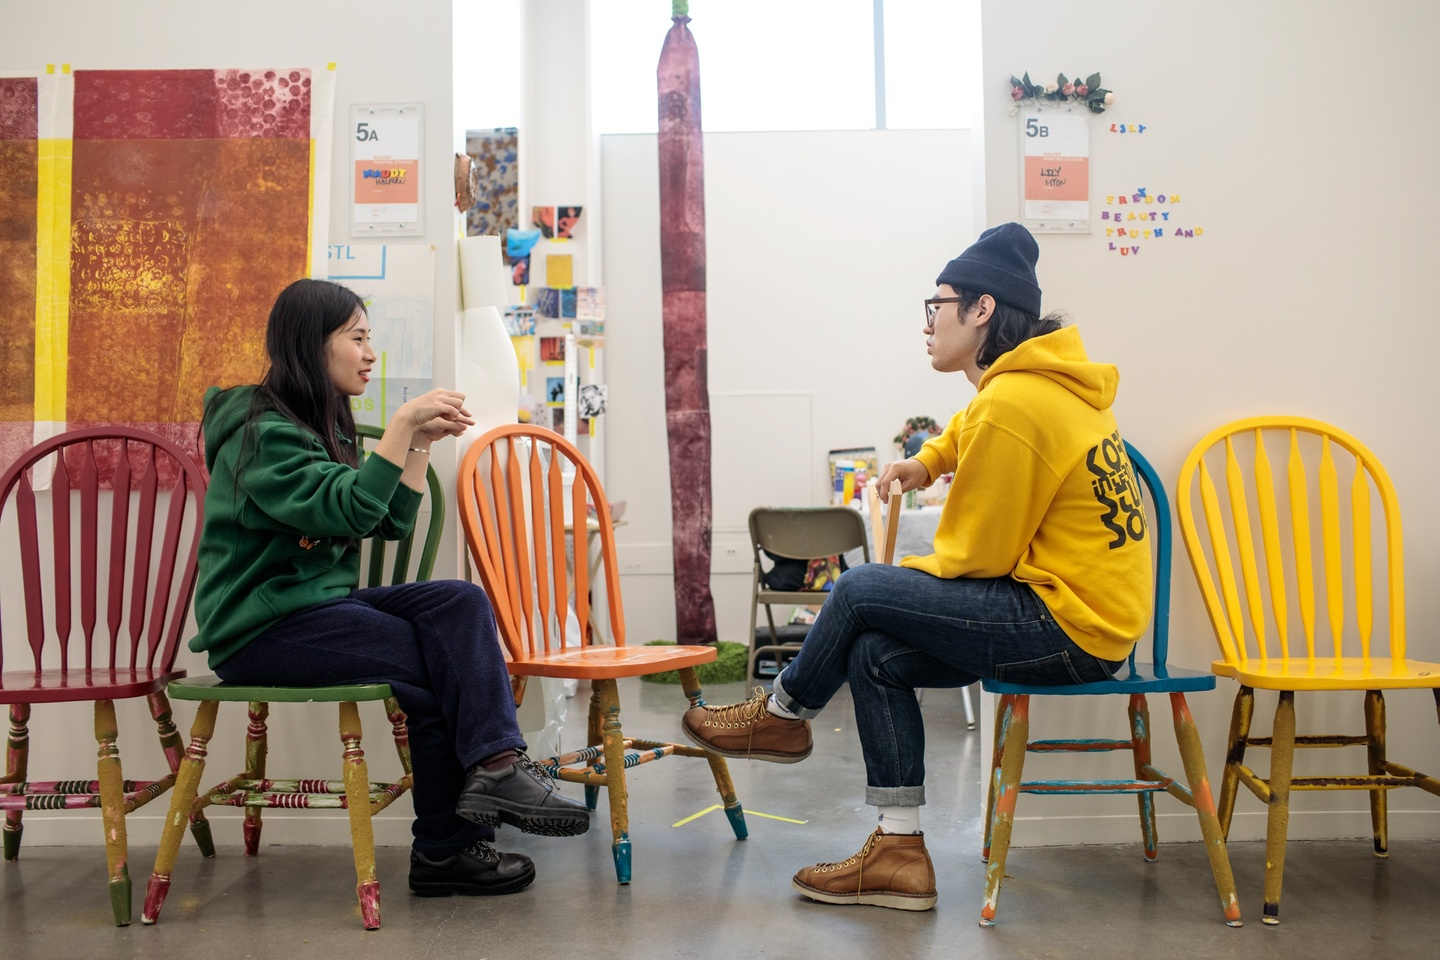 Two students sit and discuss something in a row of colorful kitchen chairs outside artist studio spaces.